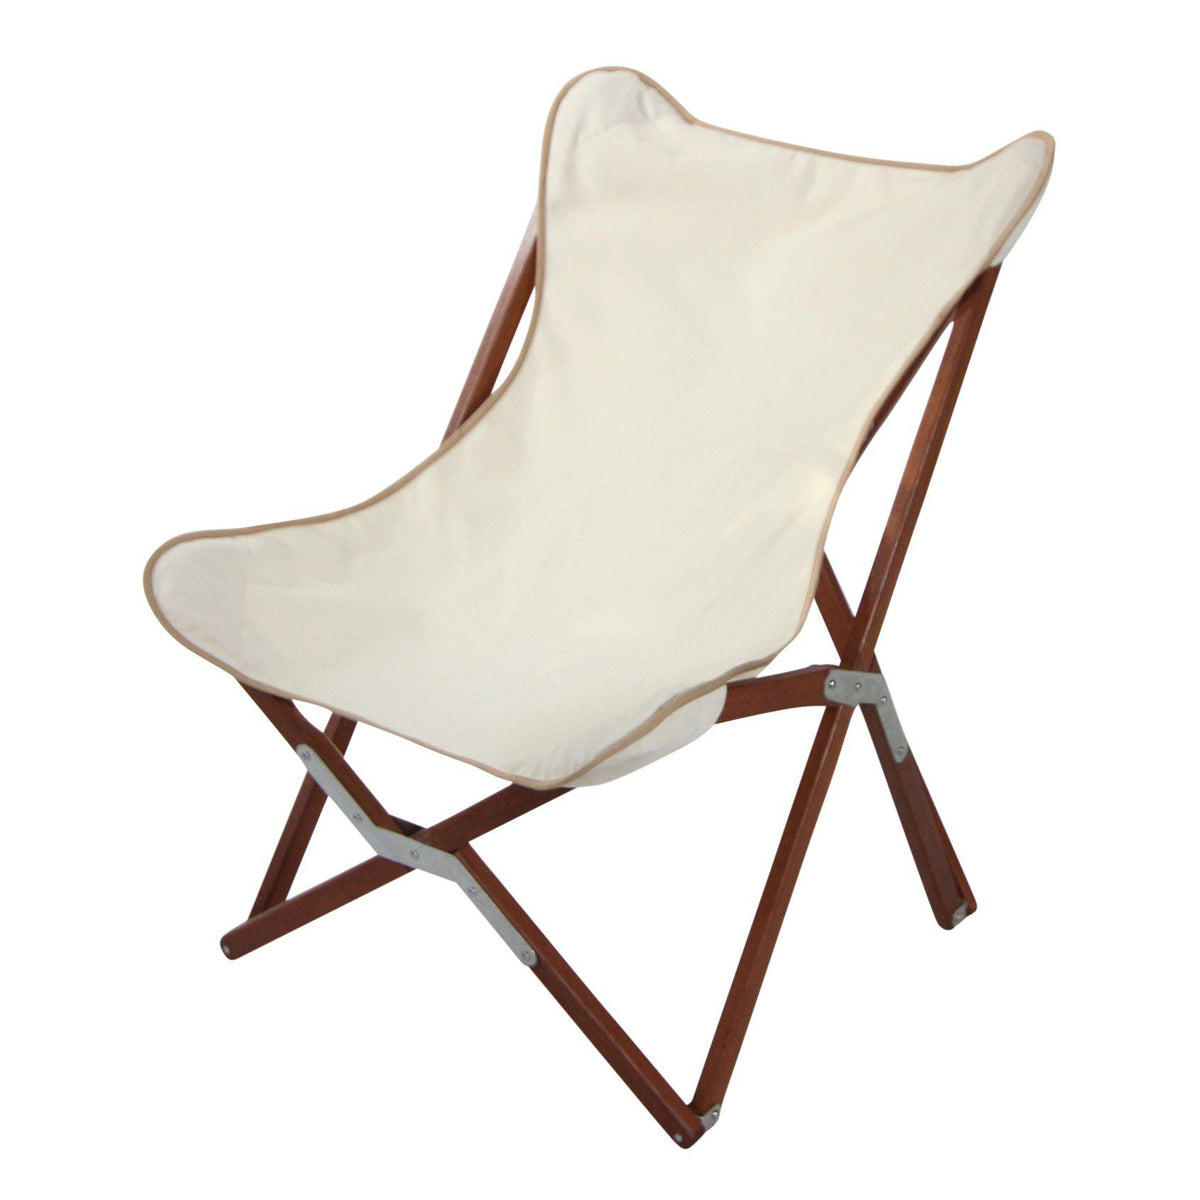 Butterfly Chair, from Byer of Maine